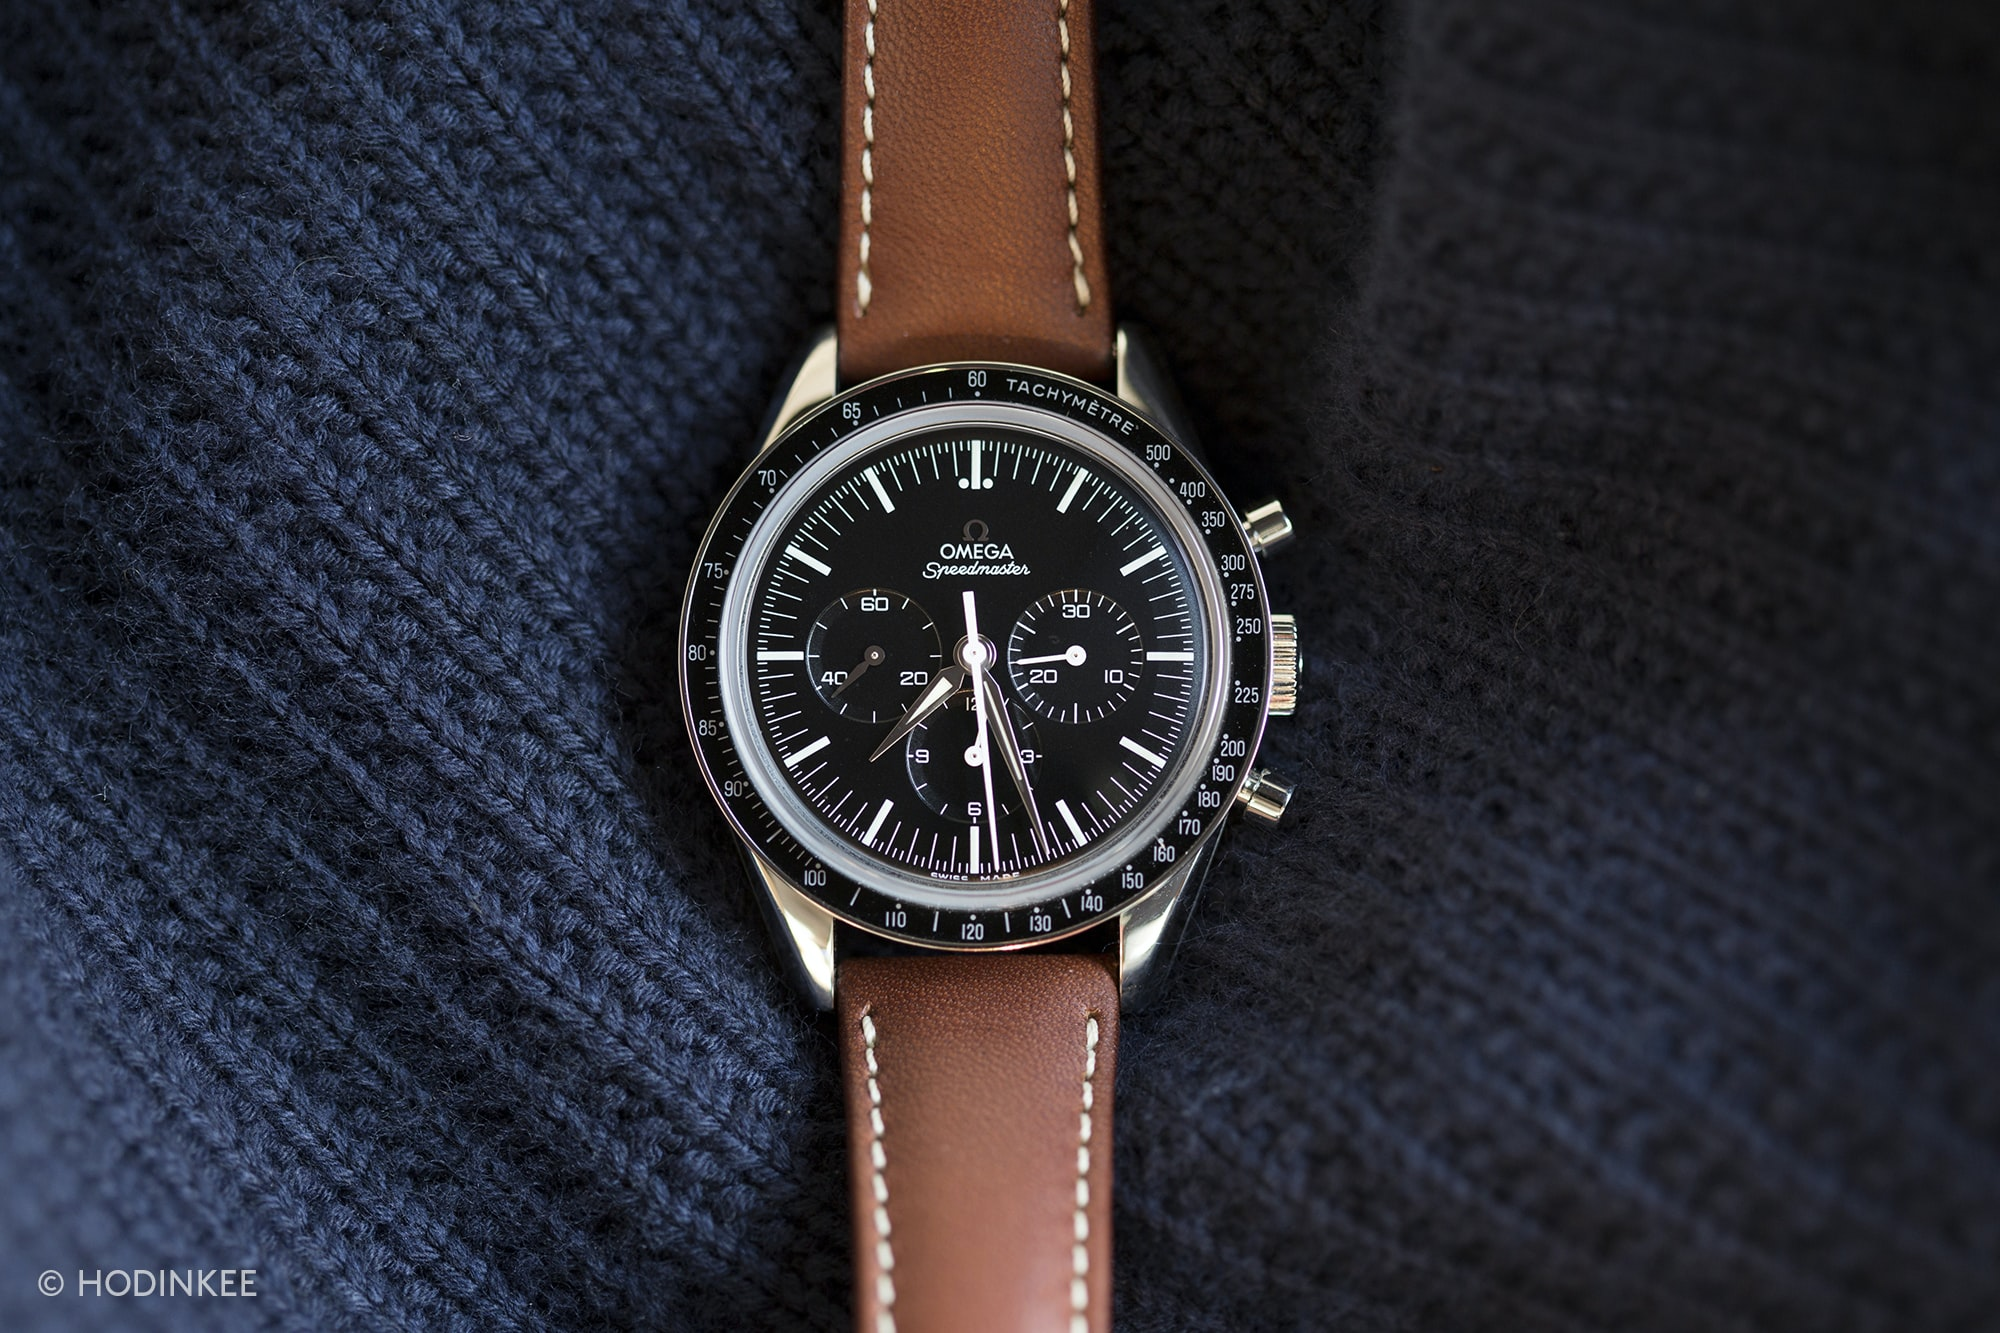 Omega Speedmaster First Omega In Space Review A Week On The Wrist: The Omega Speedmaster 'First Omega In Space' A Week On The Wrist: The Omega Speedmaster 'First Omega In Space' AAA Omega FOIS